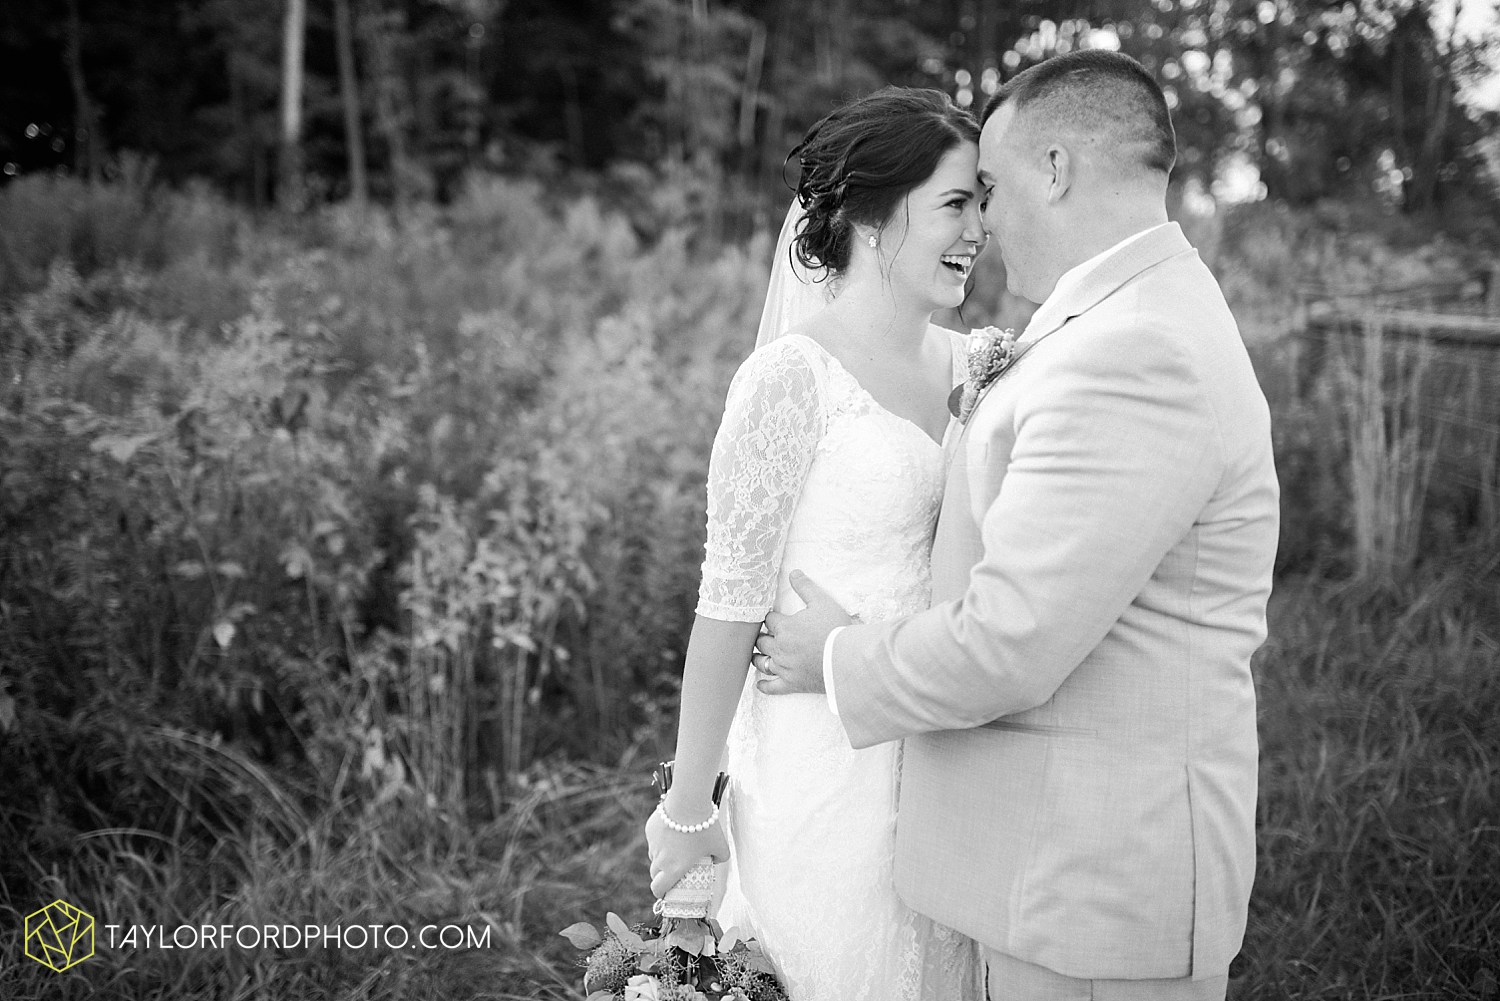 van_wert_ohio_fort_wayne_indiana_wedding_photographer_taylor_ford_cerutis_catering_2830.jpg